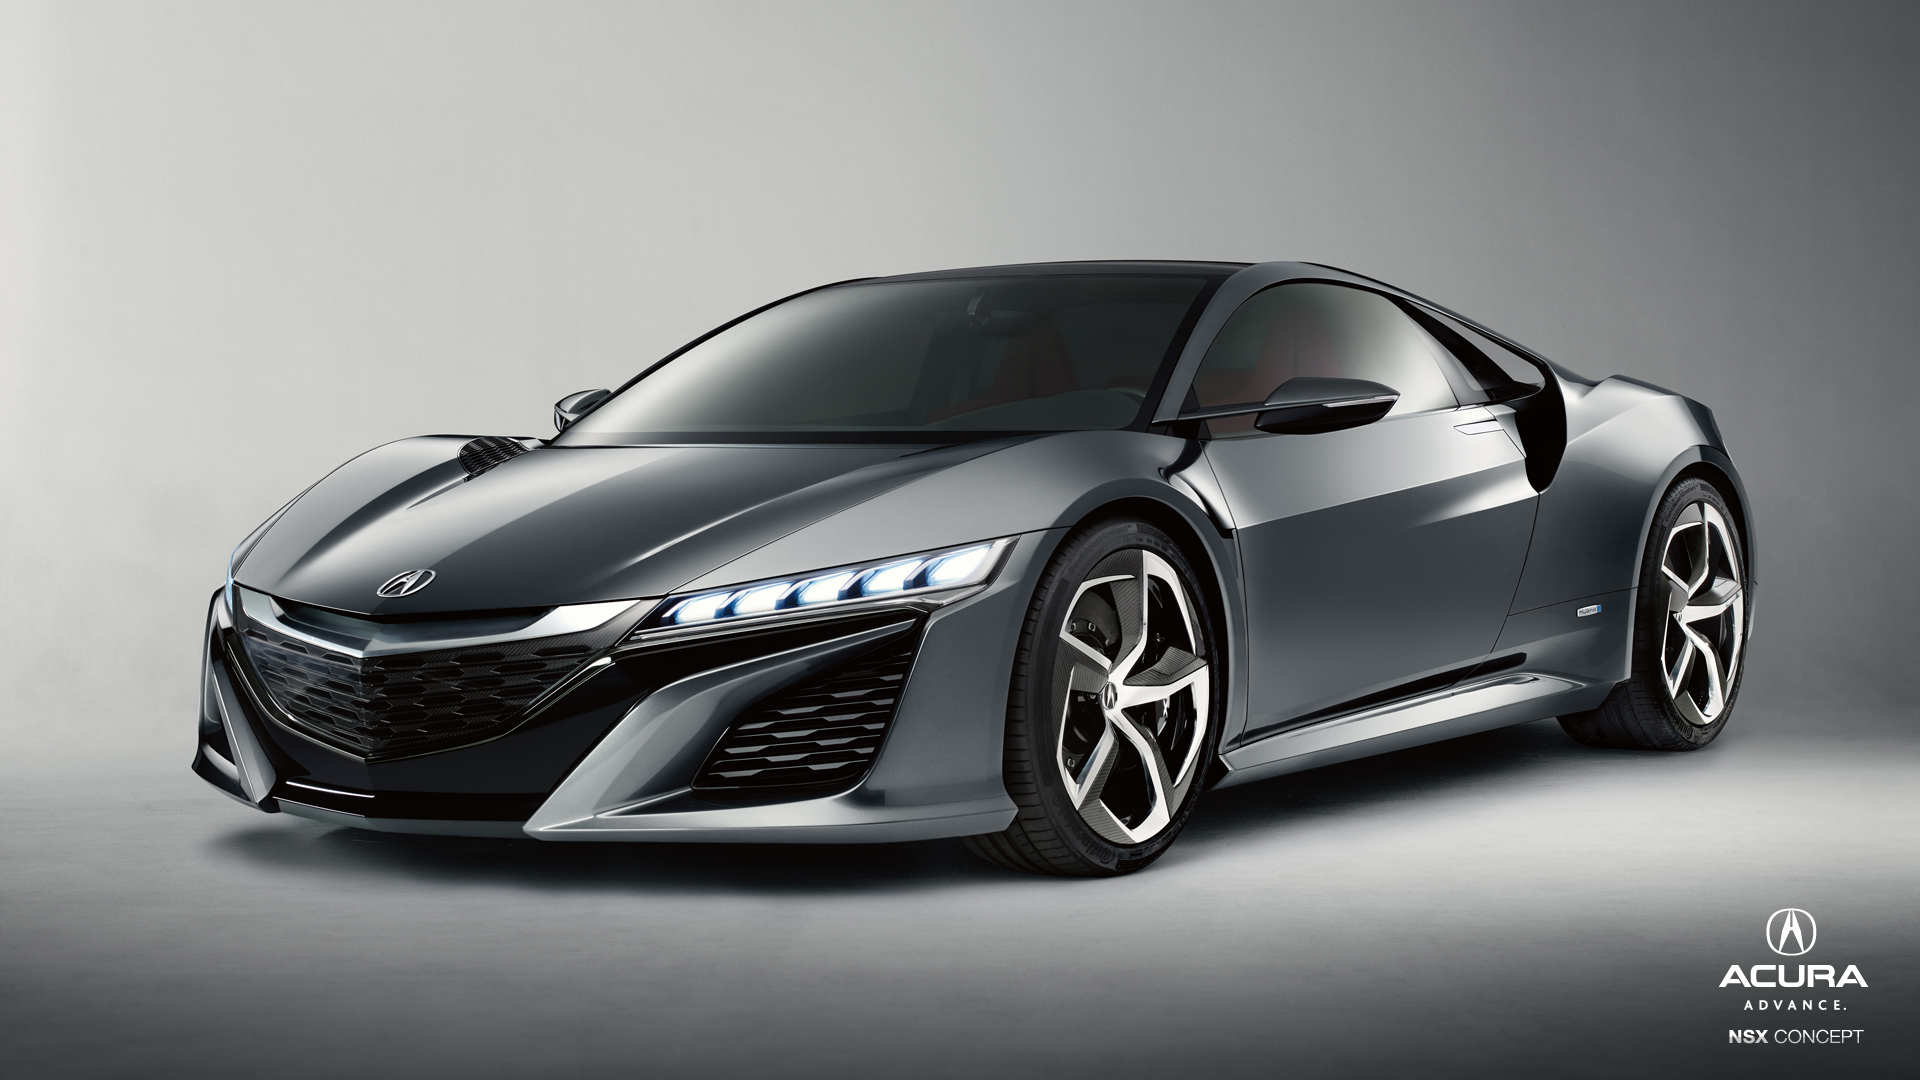 2017 Acura NSX Type-R is in the works